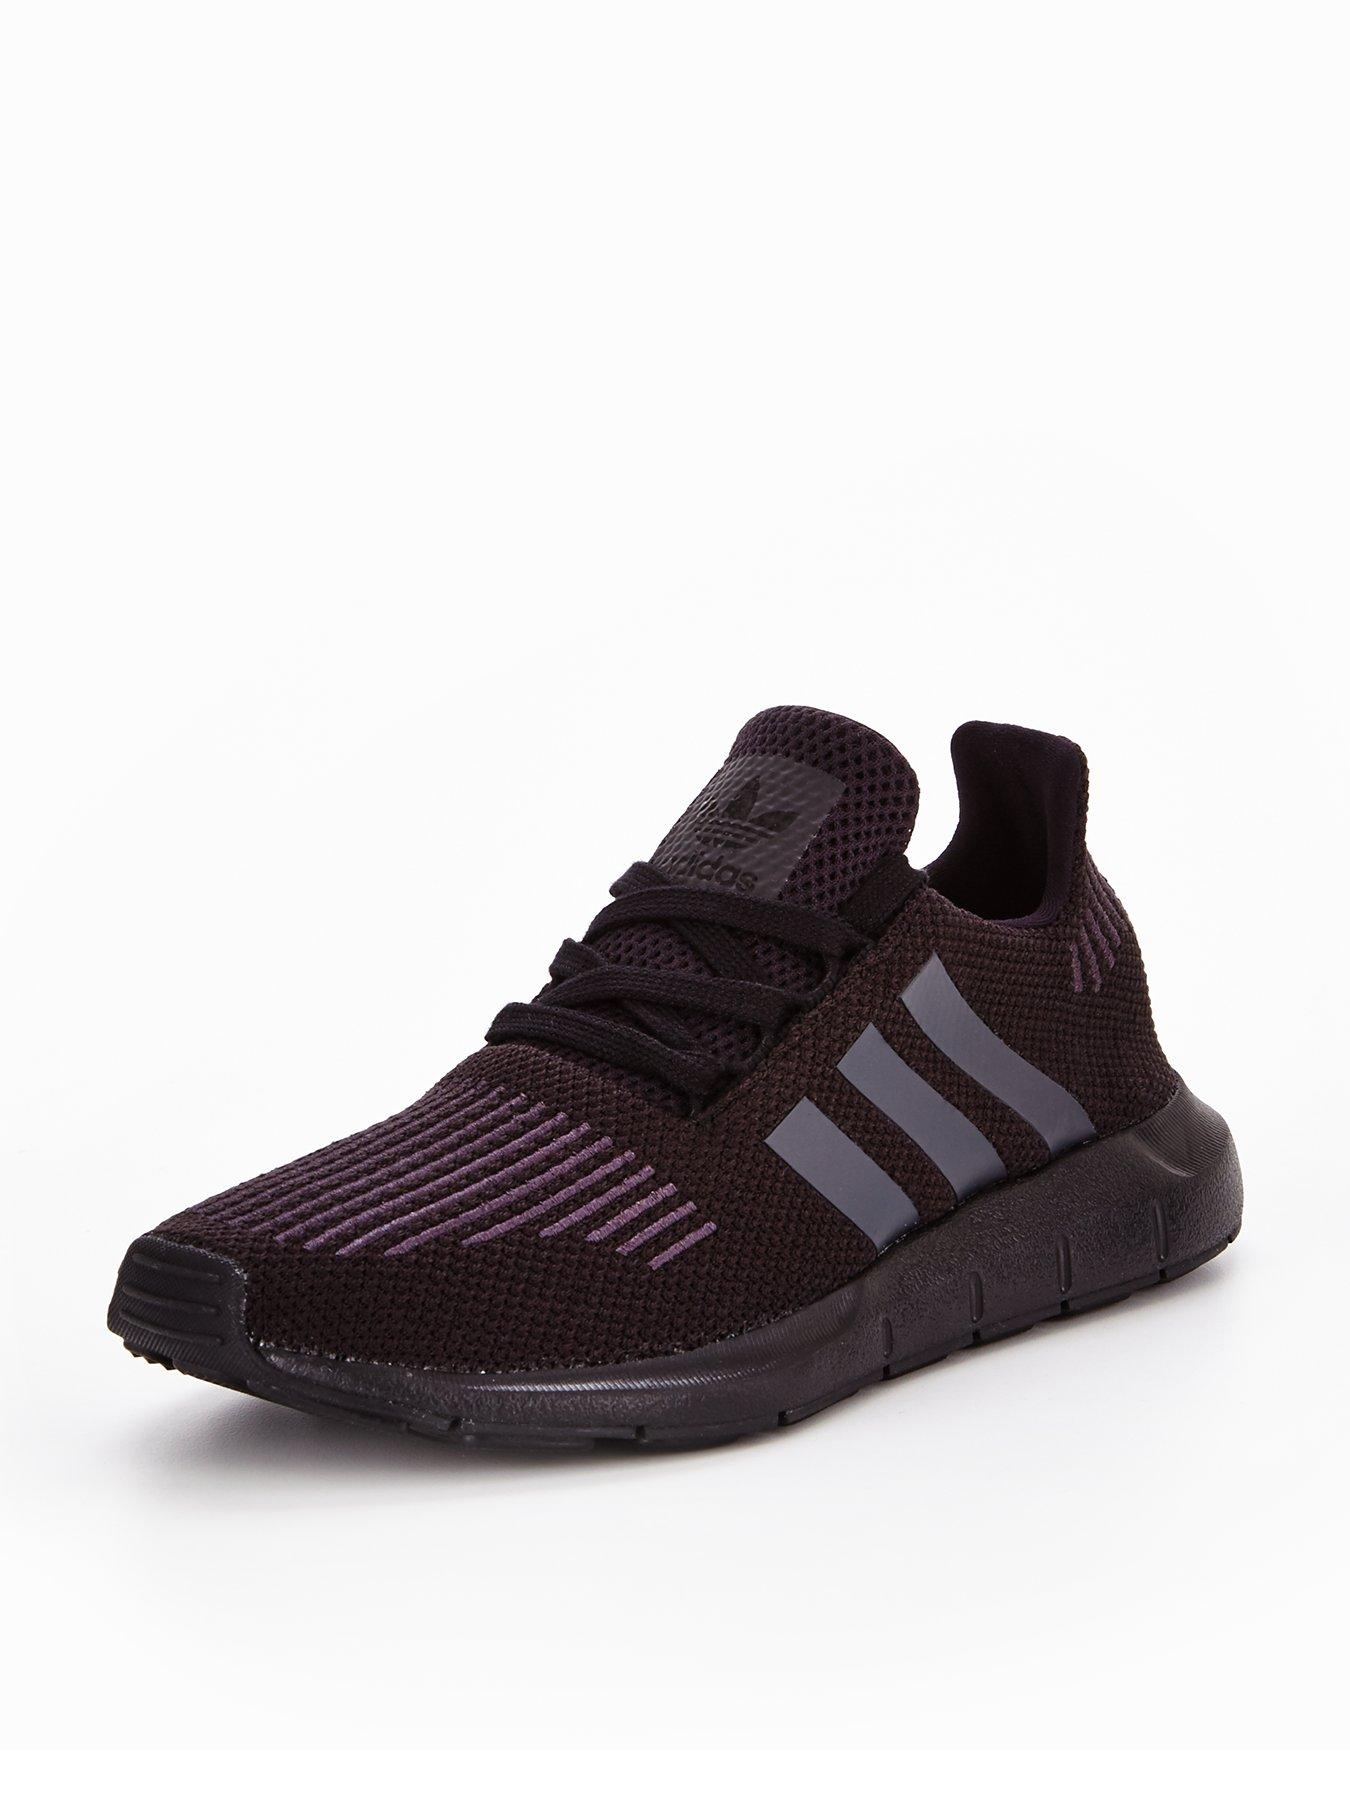 adidas trainer for kids